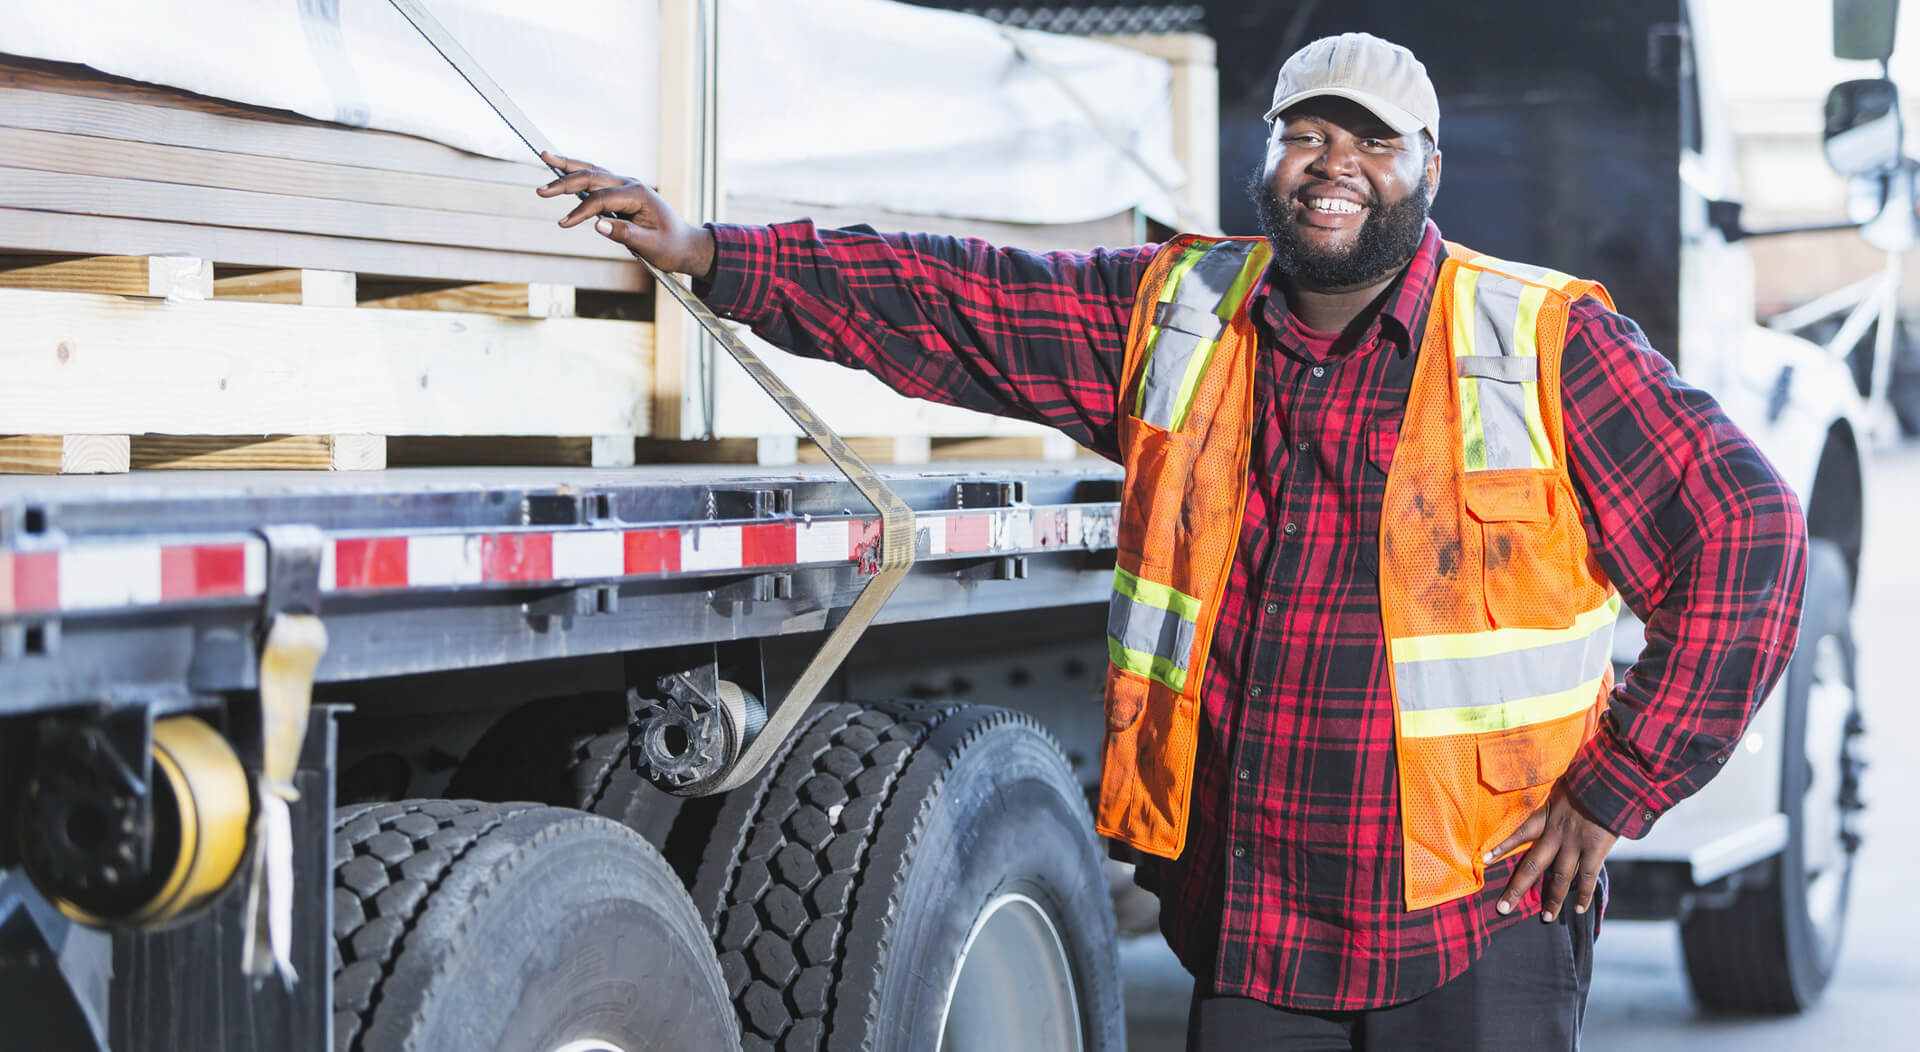 an African-American man in his 30s, standing next to a truck loaded with construction material. He is the truck driver delivering the supplies.